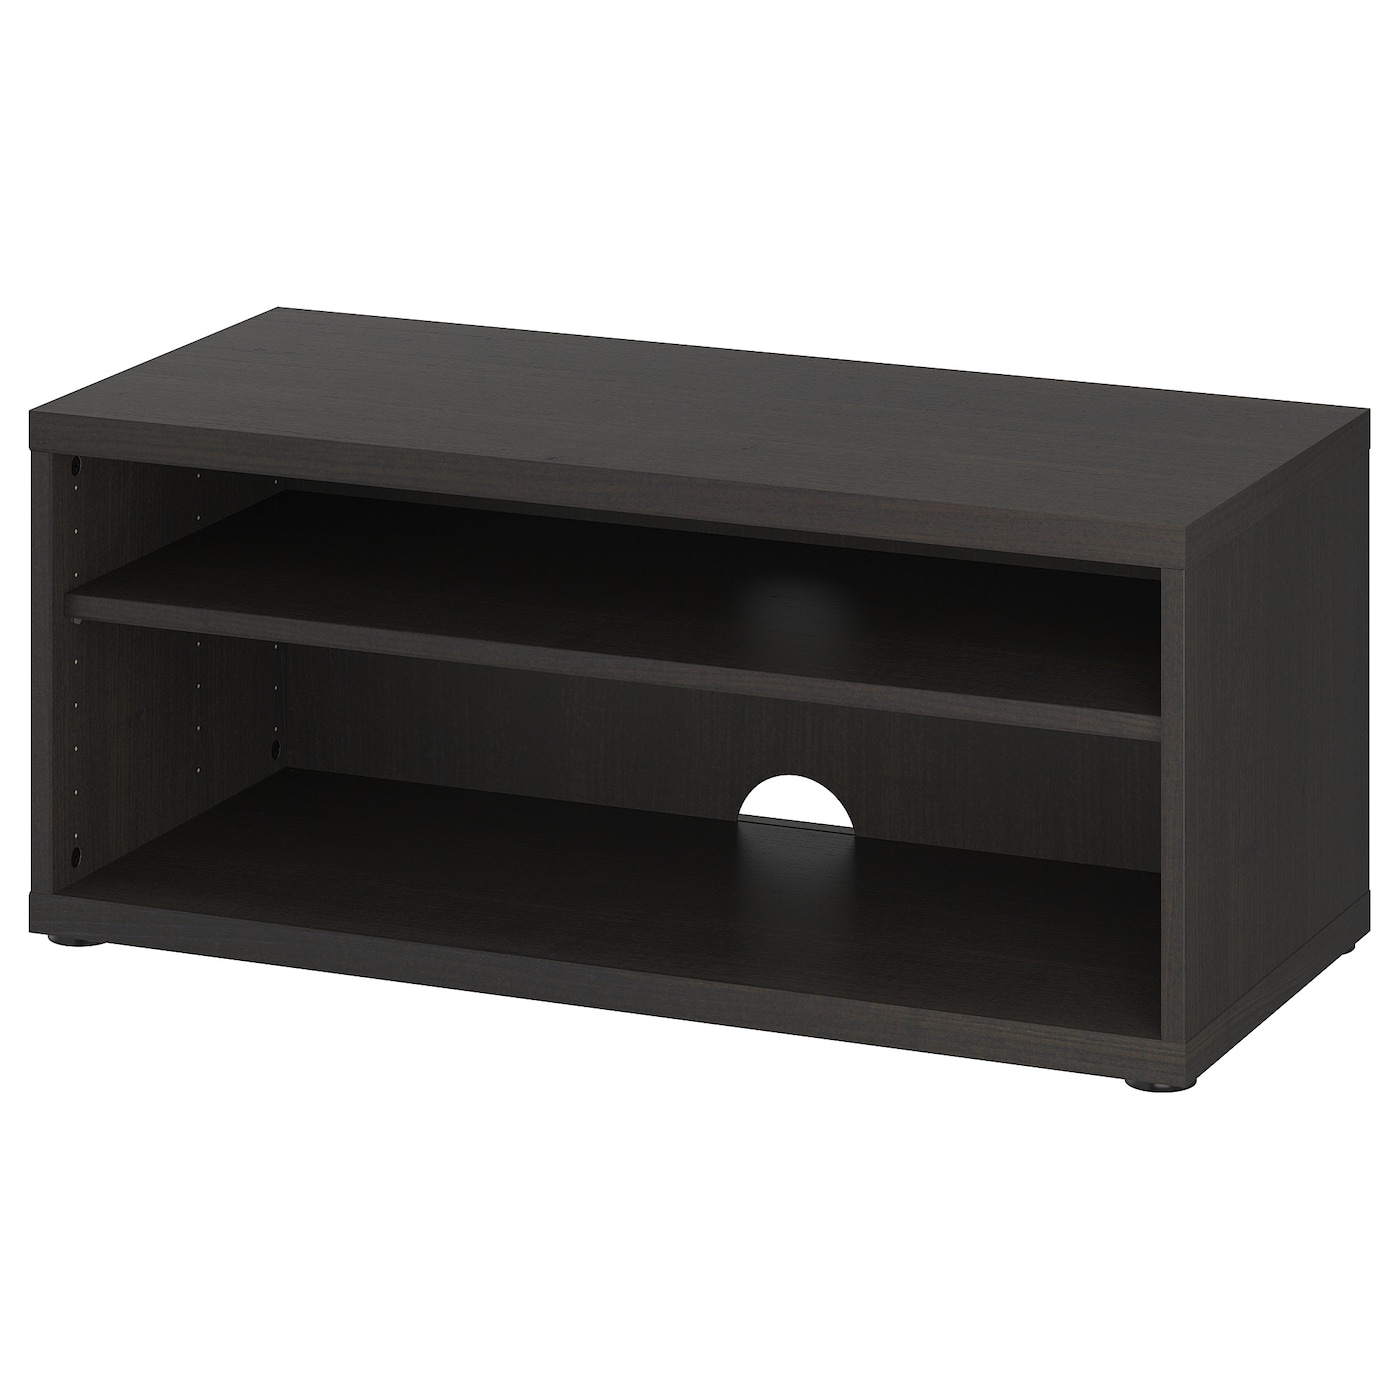 Ikea MosjÖ Tv Bench 1 Adjule Shelf Adjust Ing According To Your Own Needs